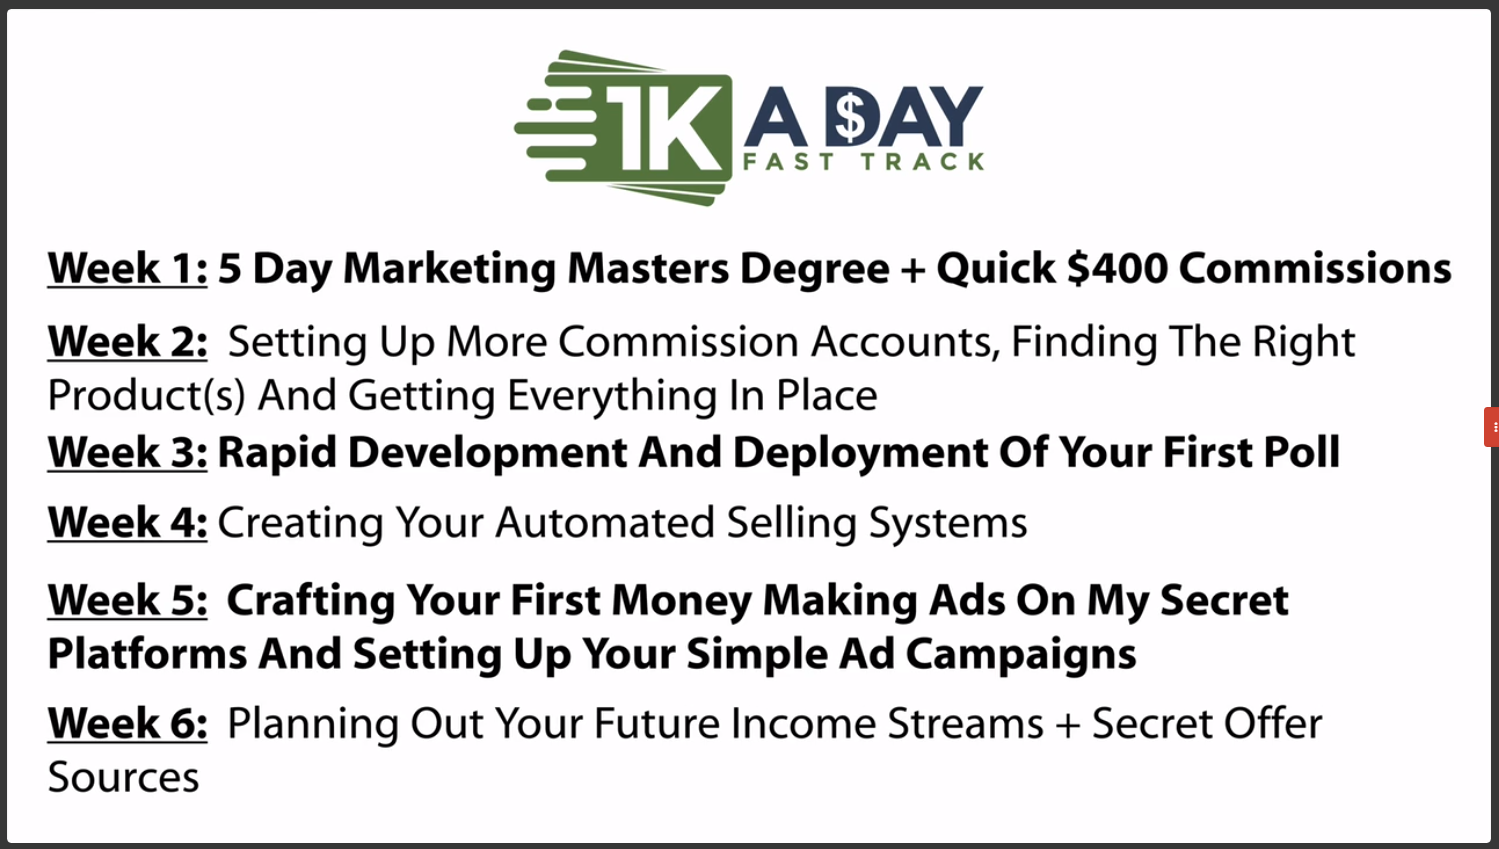 1k A Day Fast Track Training Program  Price Outright